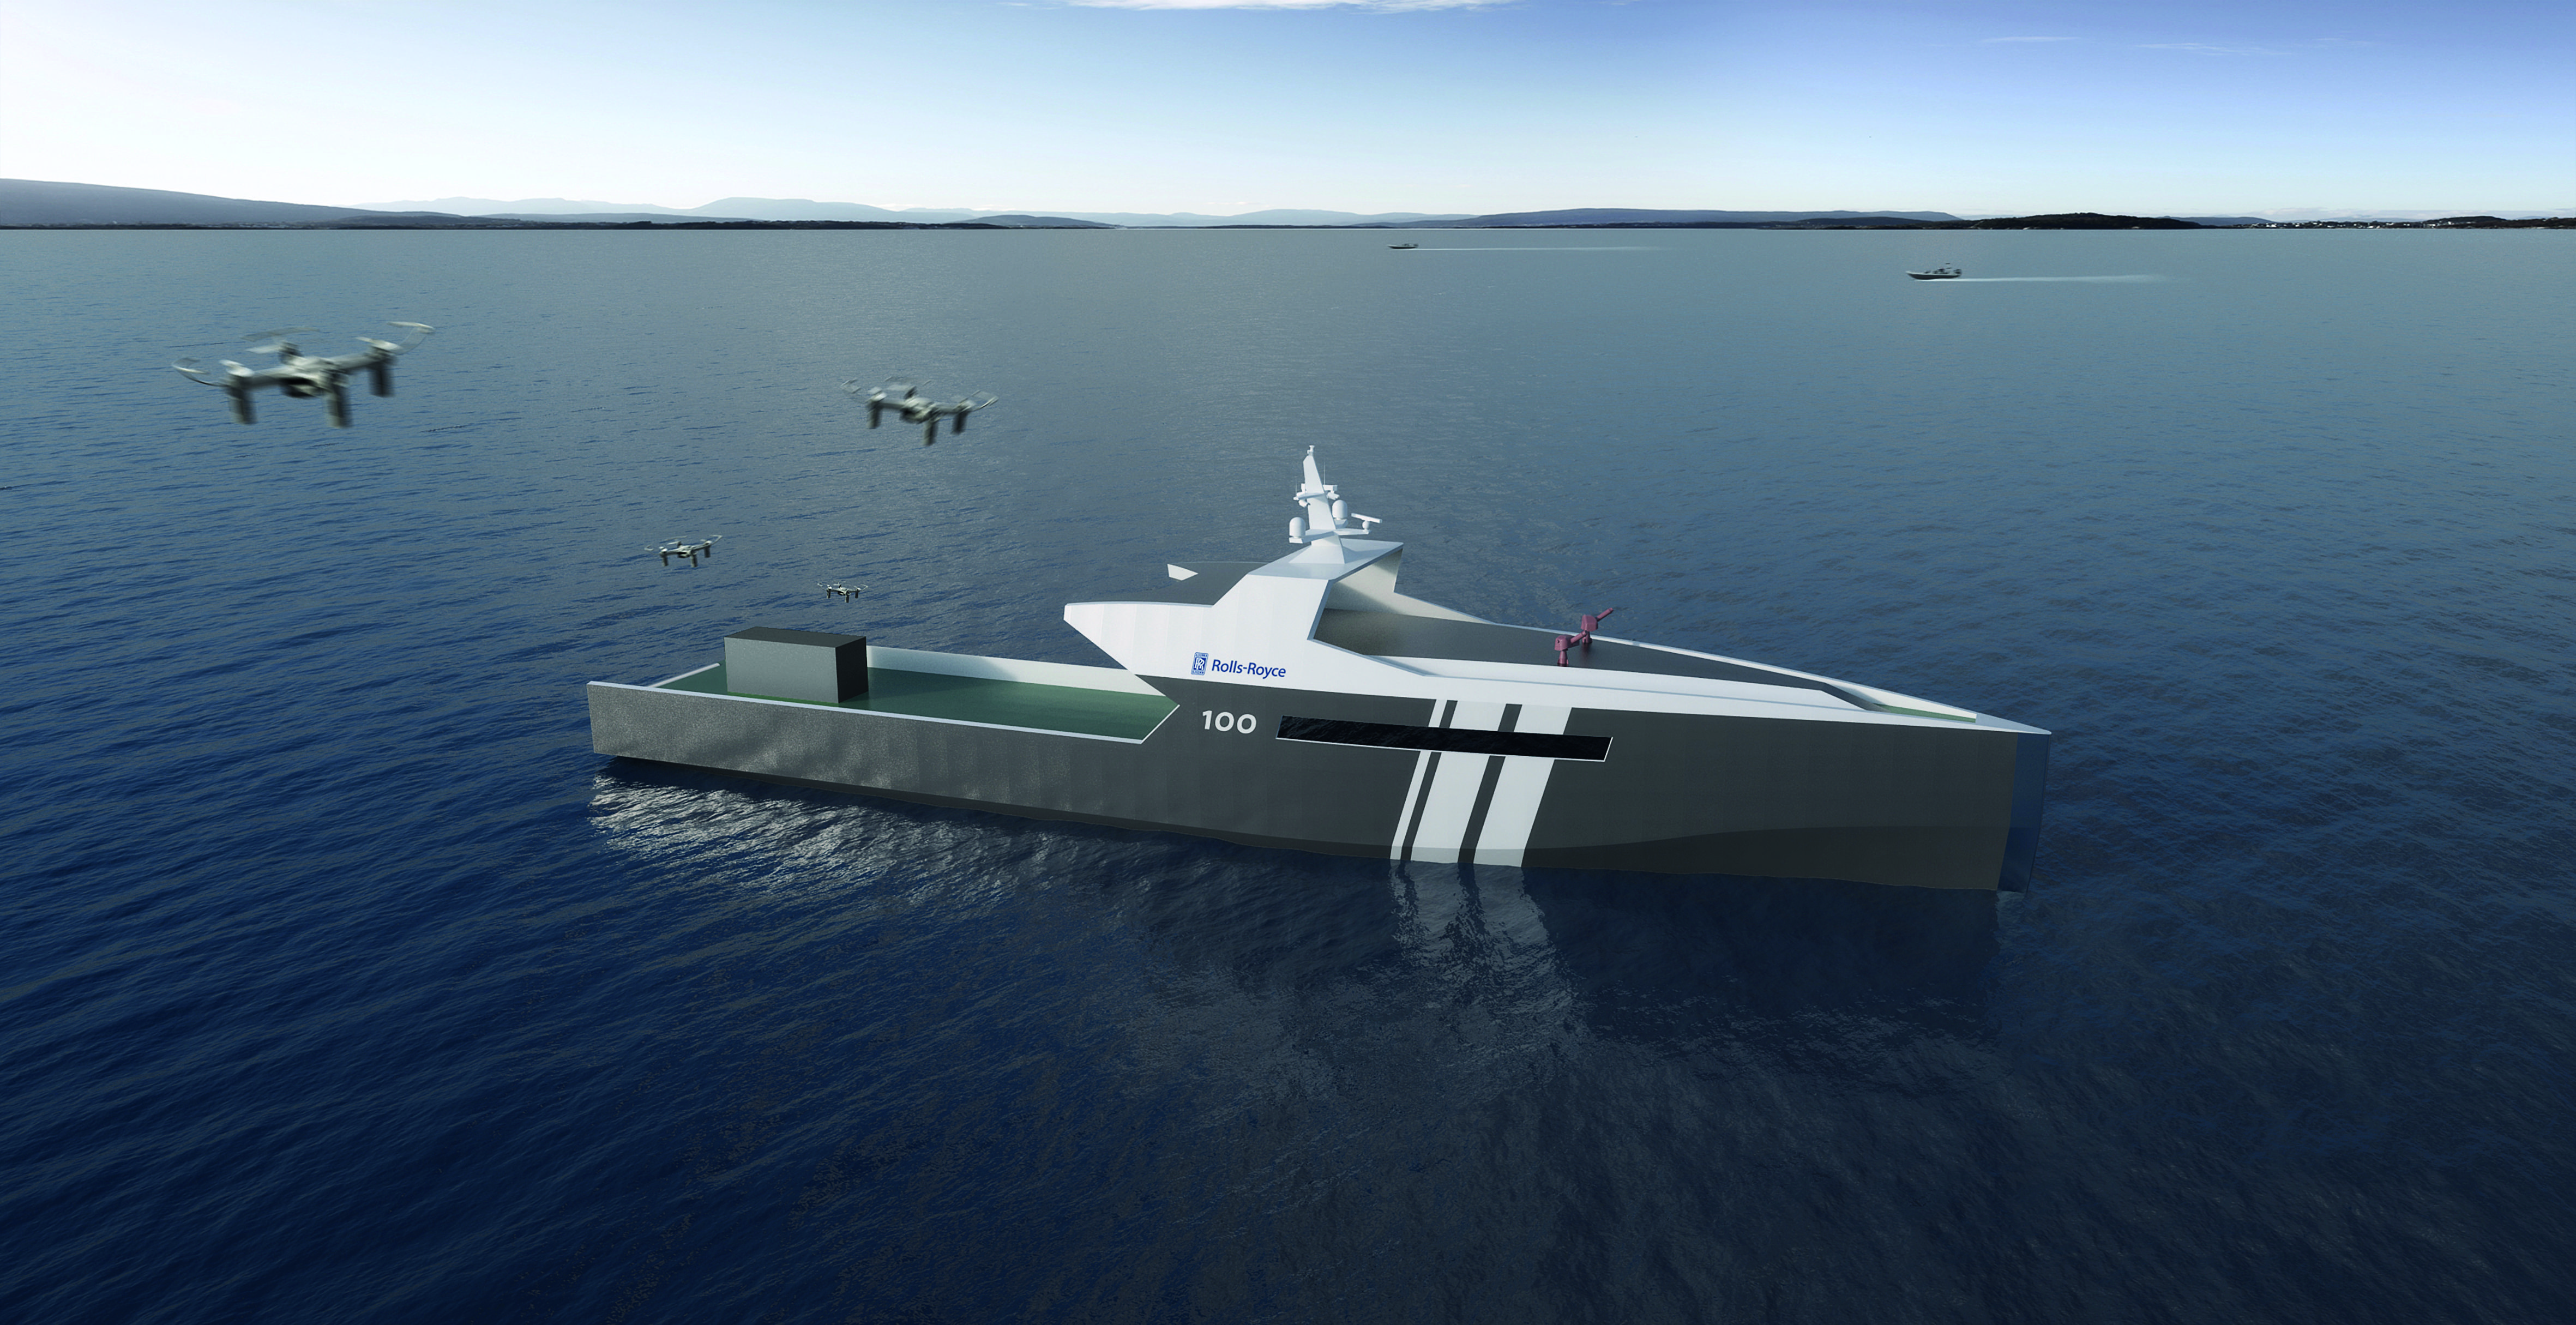 Rolls-Royce has developed unmanned naval technology to perform single-role missions (such as deploying drones) assisted by sensors and artificial intelligence as a route to reducing the through-life costs associated with crew. (Rolls-Royce)